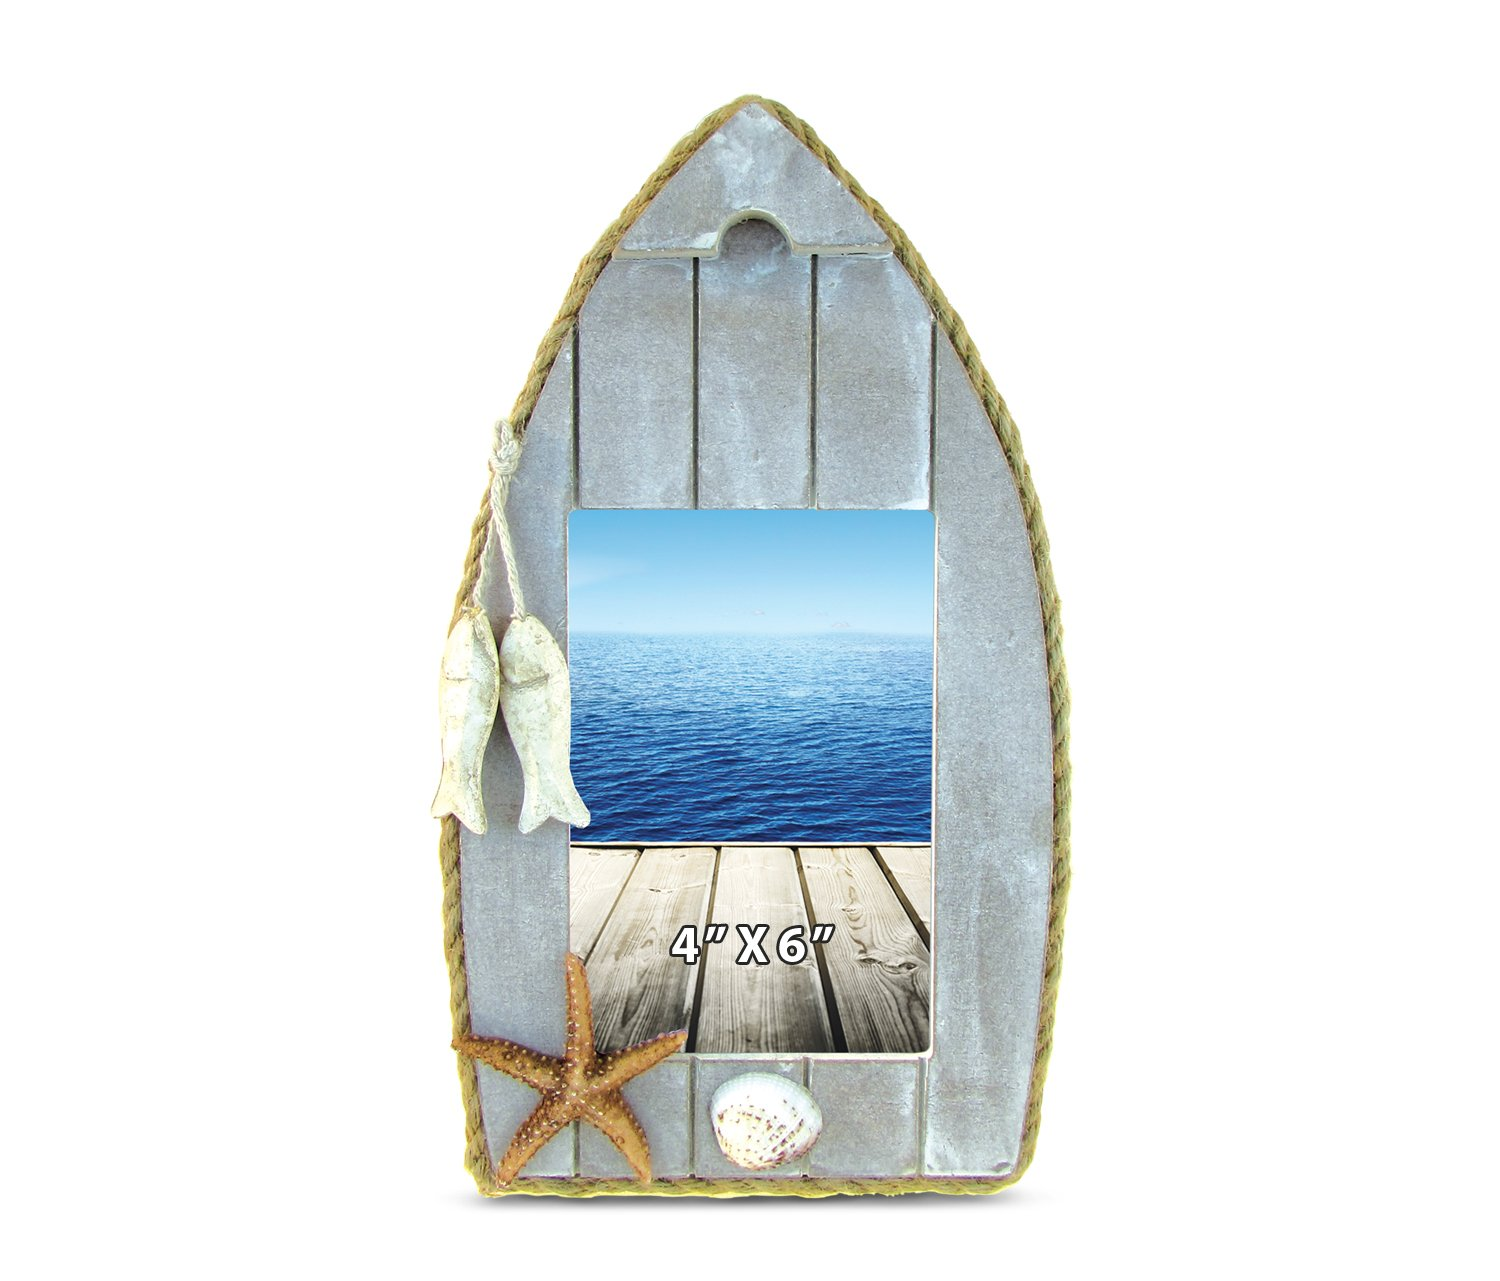 Puzzled Coastal 4 x 6 Distressed Wooden Sail Boat Picture Frame, Lake House Cruise Decoration Back Easel Handcrafted for Tabletops Office Desktop Tabletop Accent - Nautical Beach Theme Home Decor by Puzzled